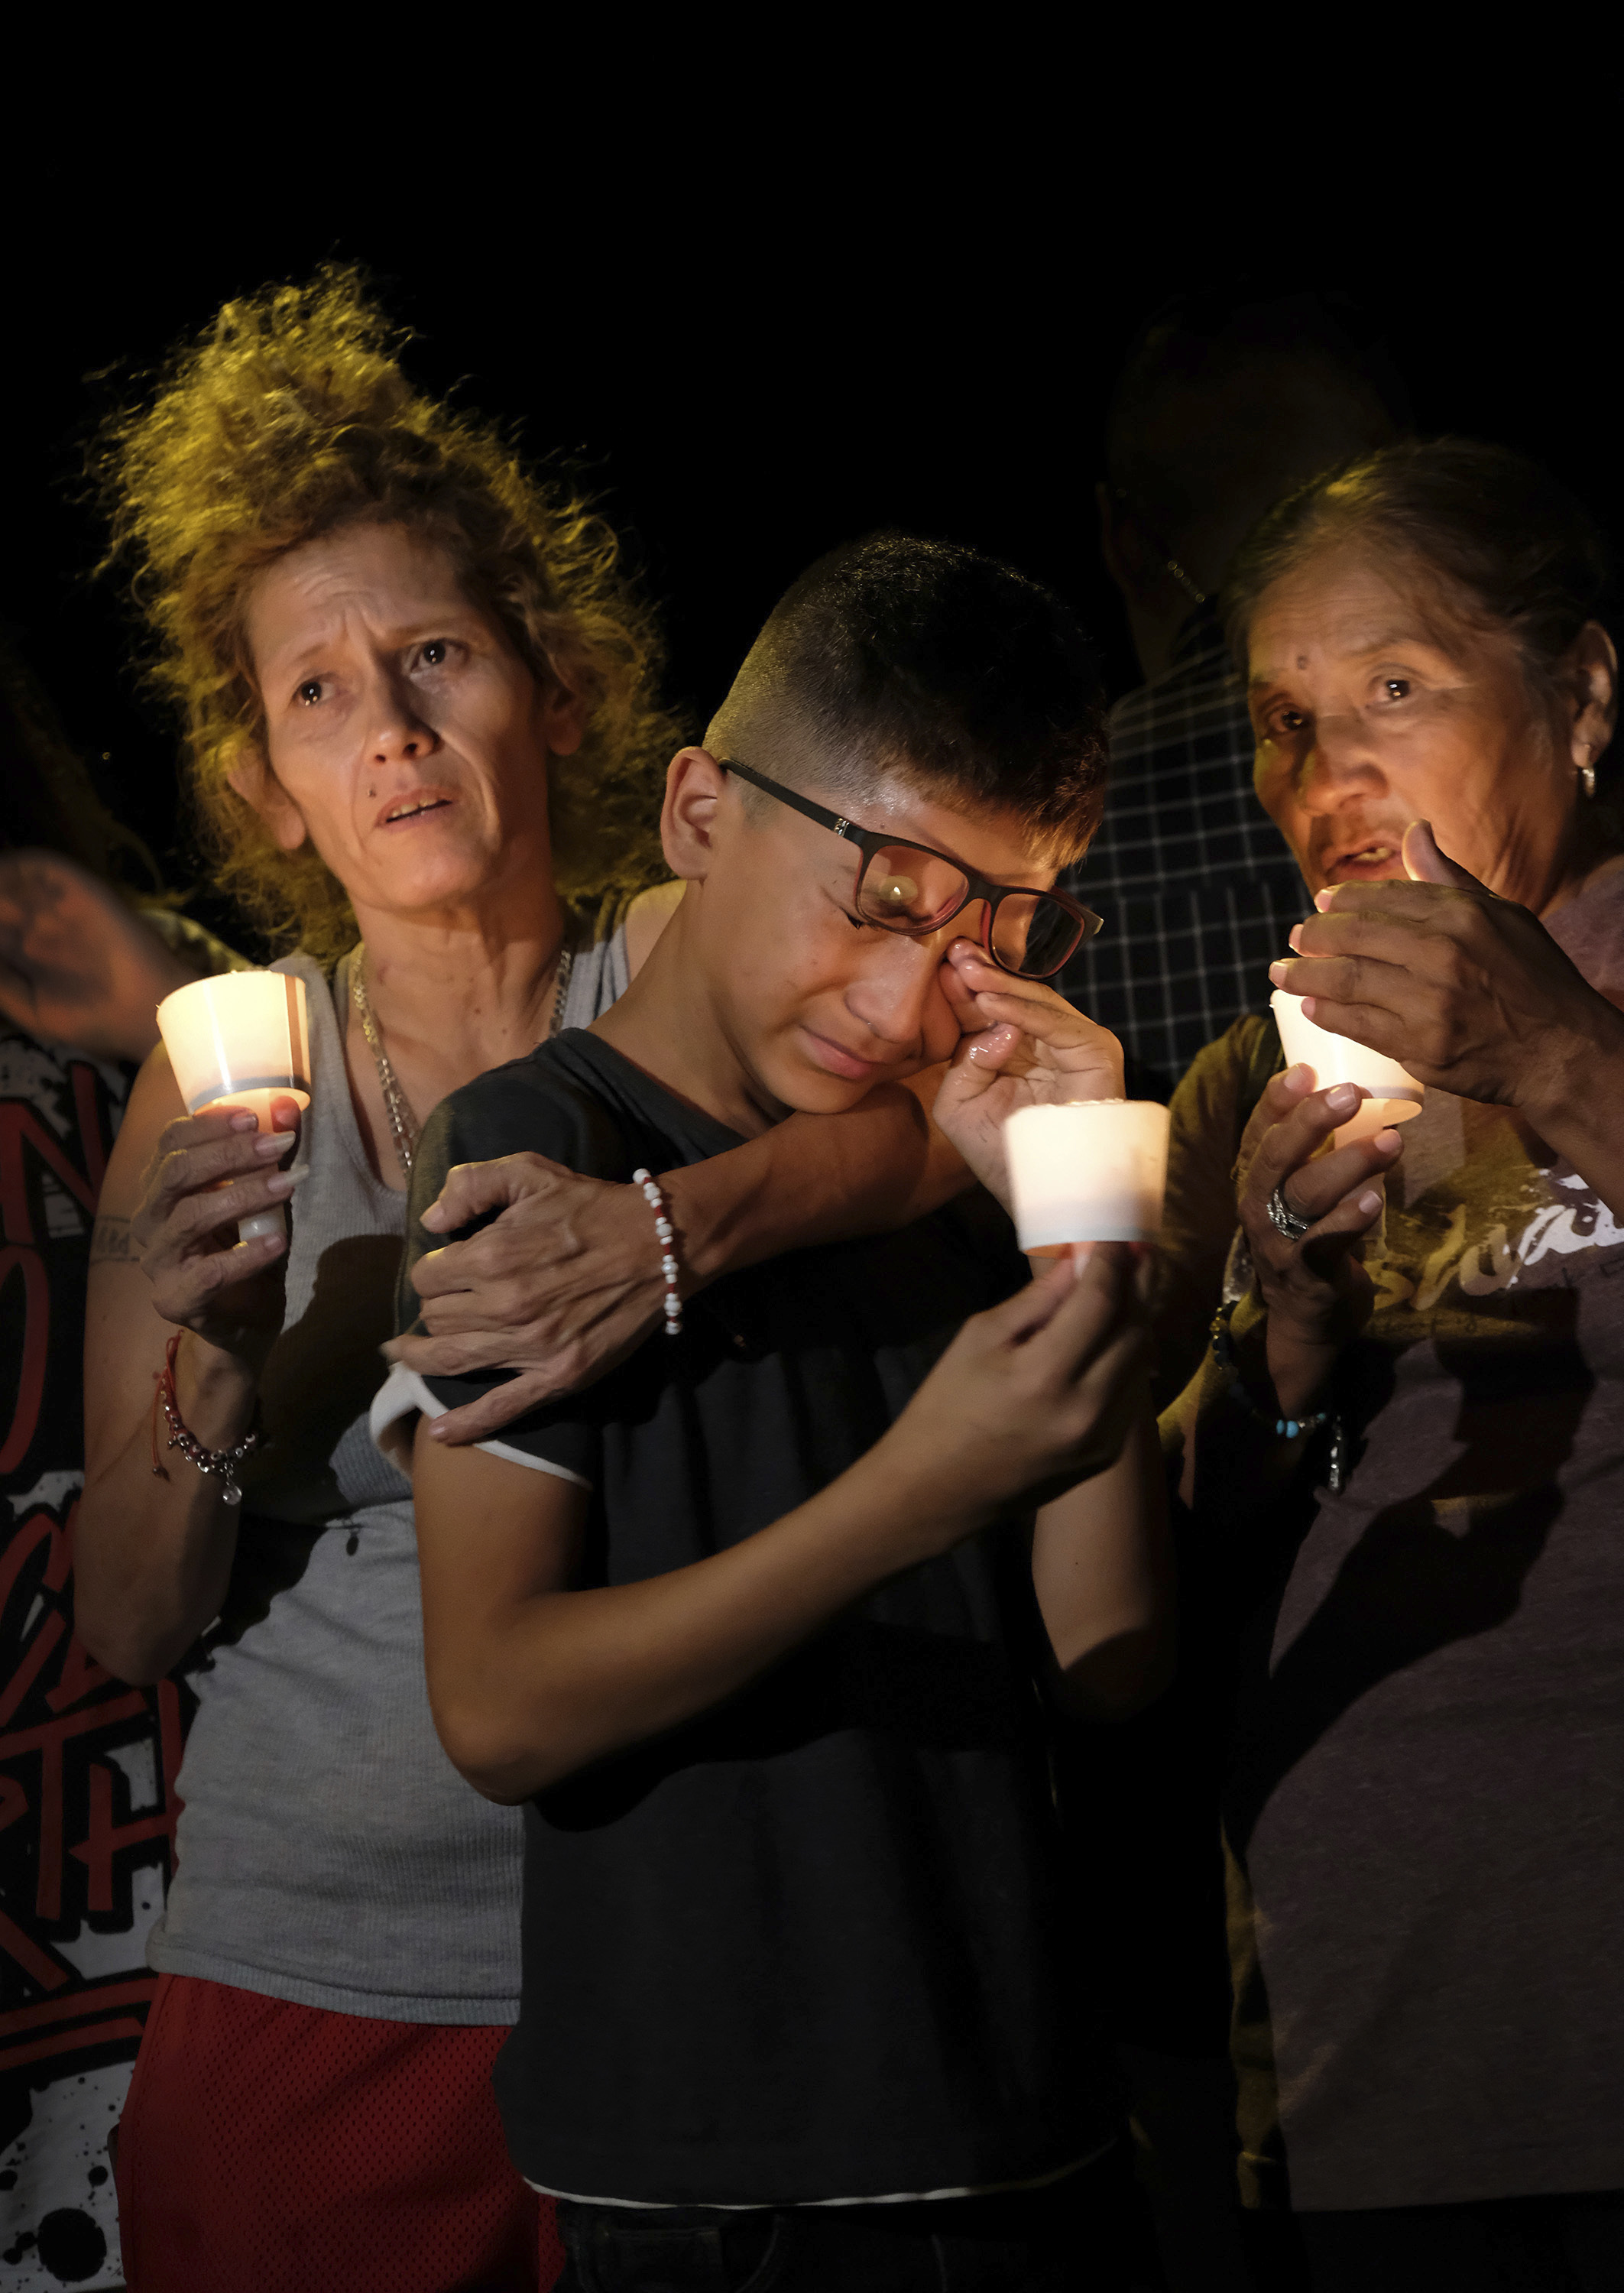 "<div class=""meta image-caption""><div class=""origin-logo origin-image none""><span>none</span></div><span class=""caption-text"">Mona Rodriguez, Jayanthony Hernandez, 12 and Juanita Rodriguez, from left, participate in a candlelight vigil held for the victims of the shooting. (Laura Skelding/AP)</span></div>"